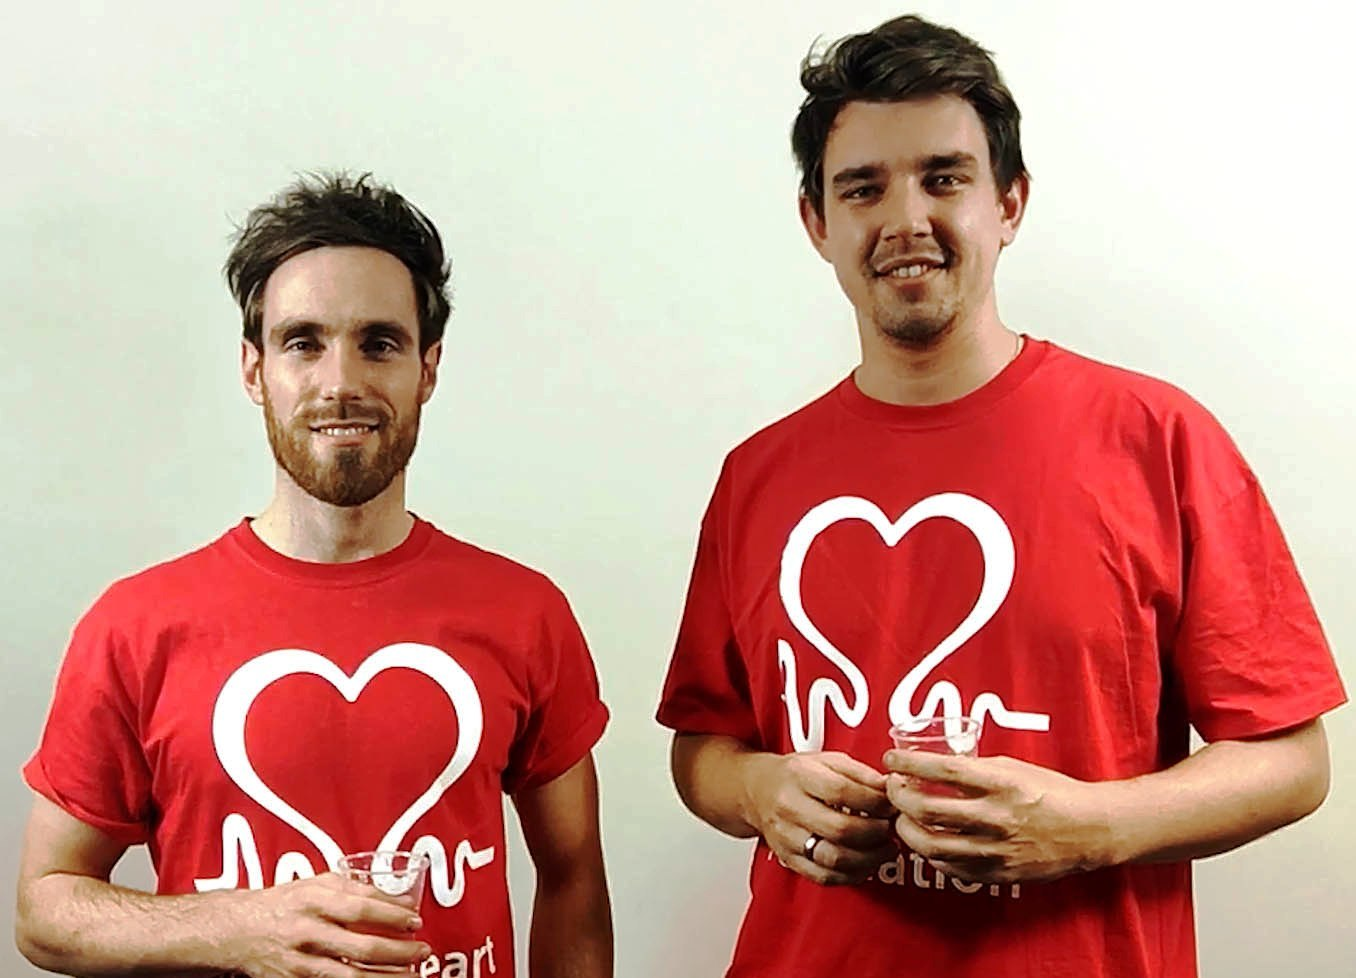 HEARTFELT-Jonathan, left and David Stretton-Downes who are hoping to raise £100,000 for the British Heart Foundation